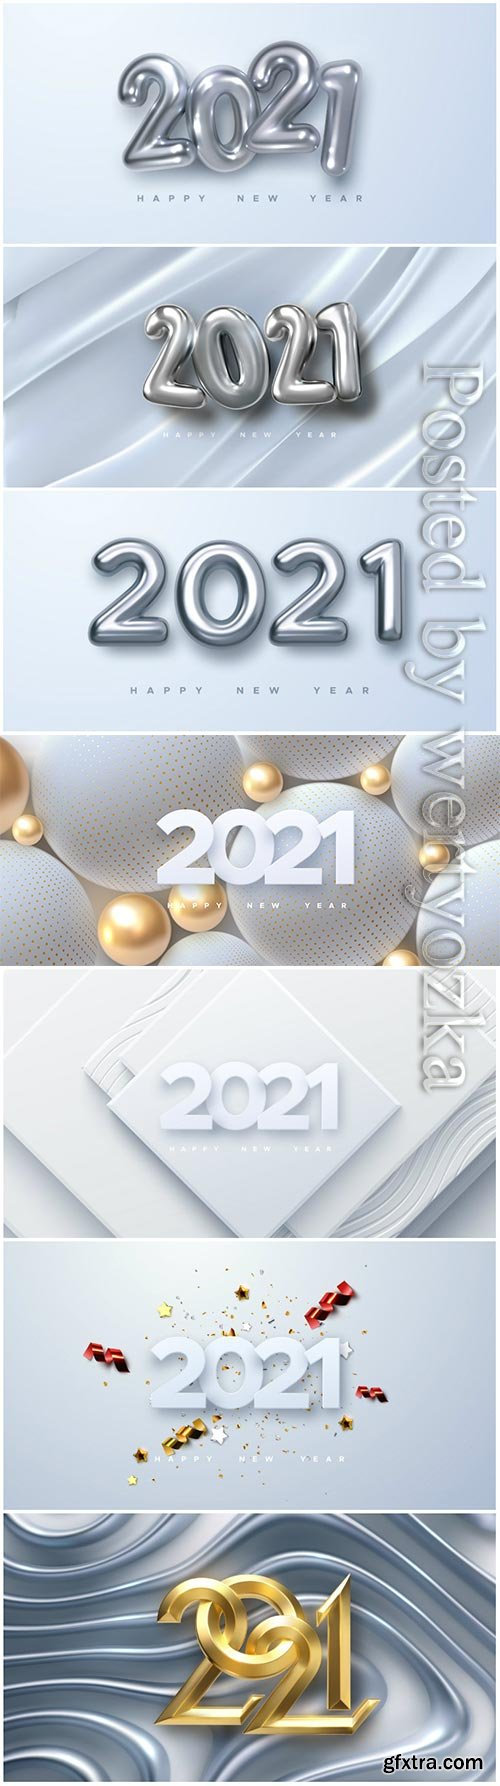 Elegant vector numbers 2021 for new year illustration